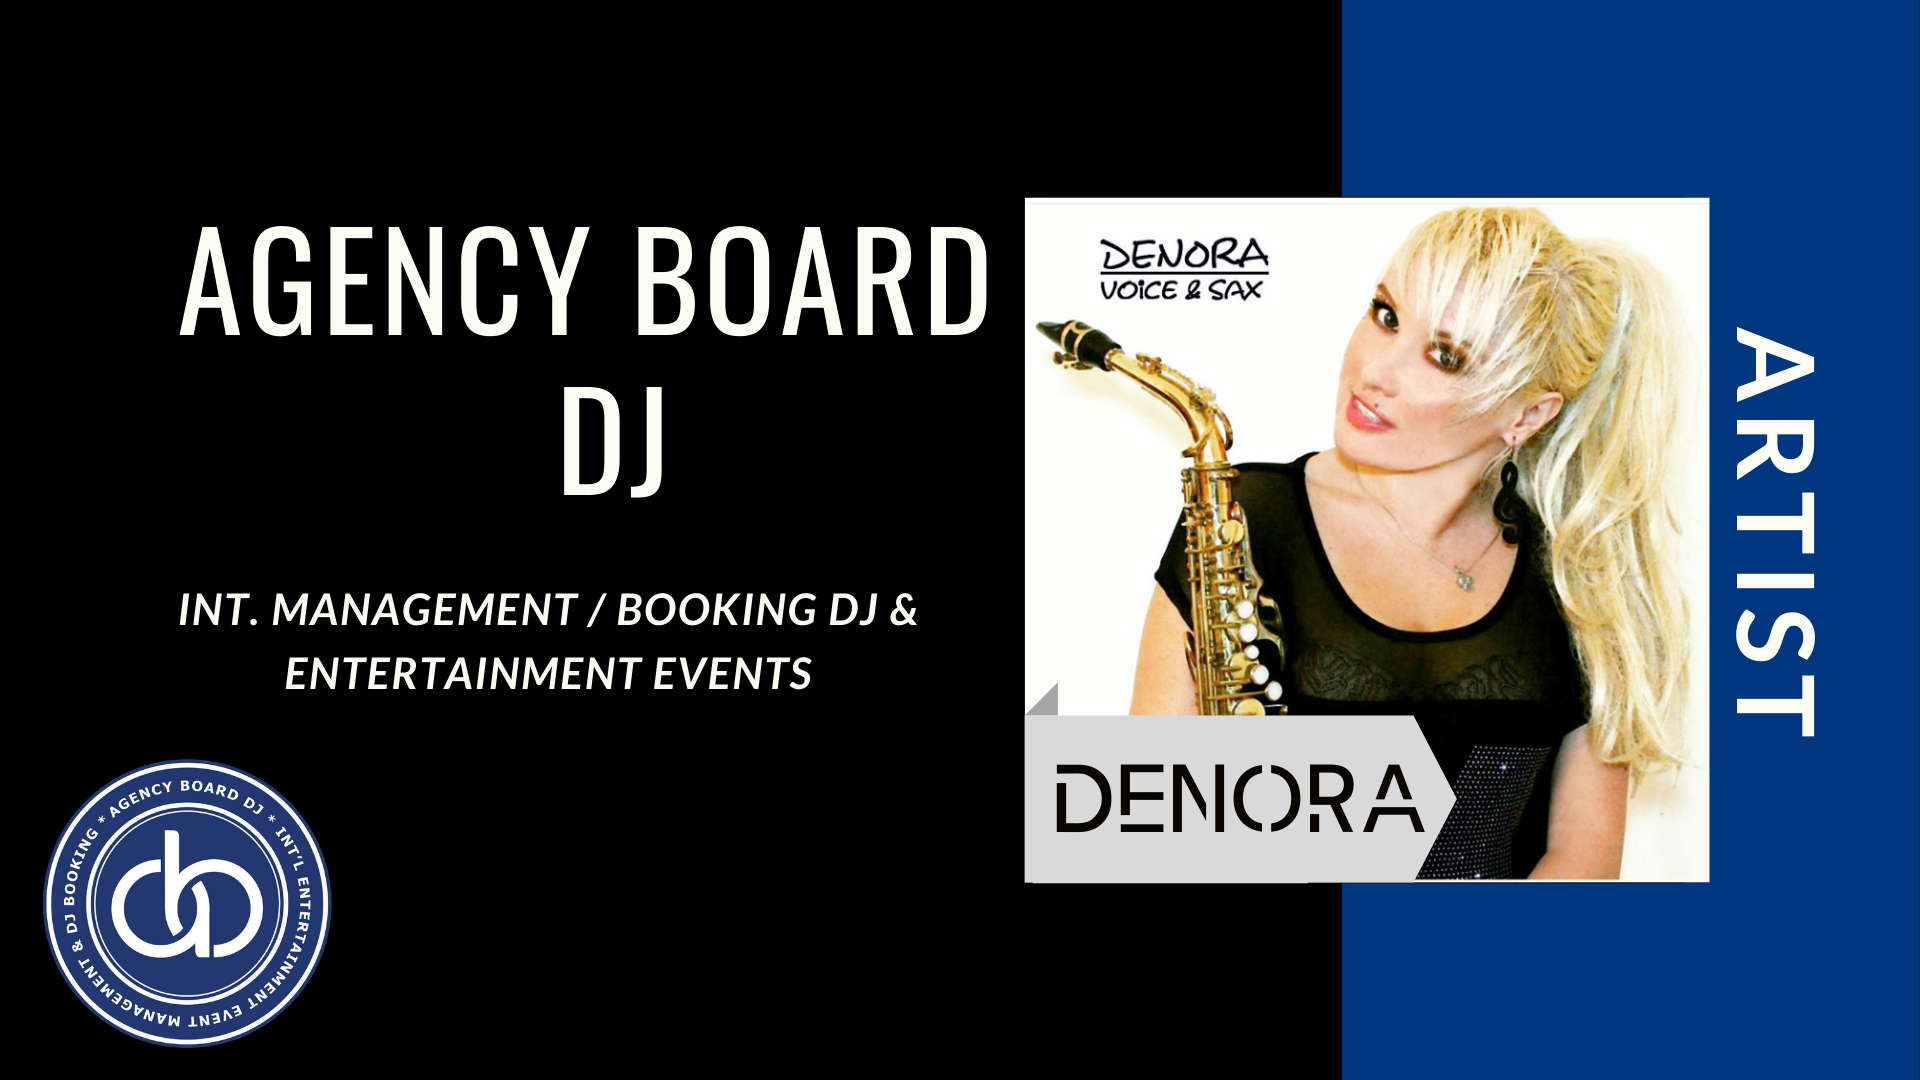 DENORA,Artist, DJ Booking Agency